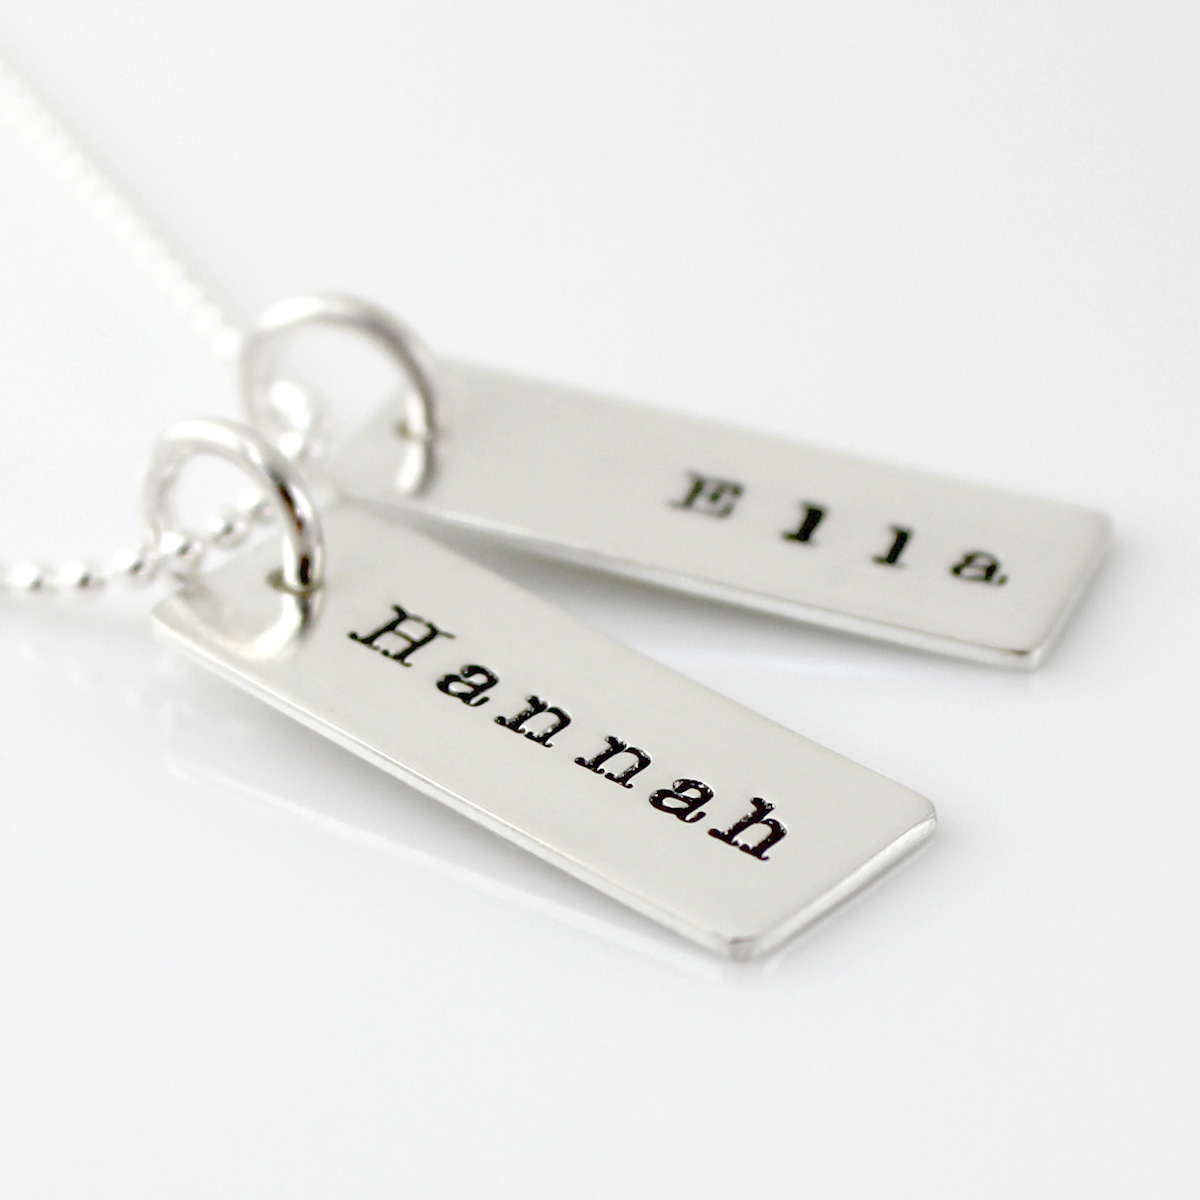 Name Tag Necklace - two tags